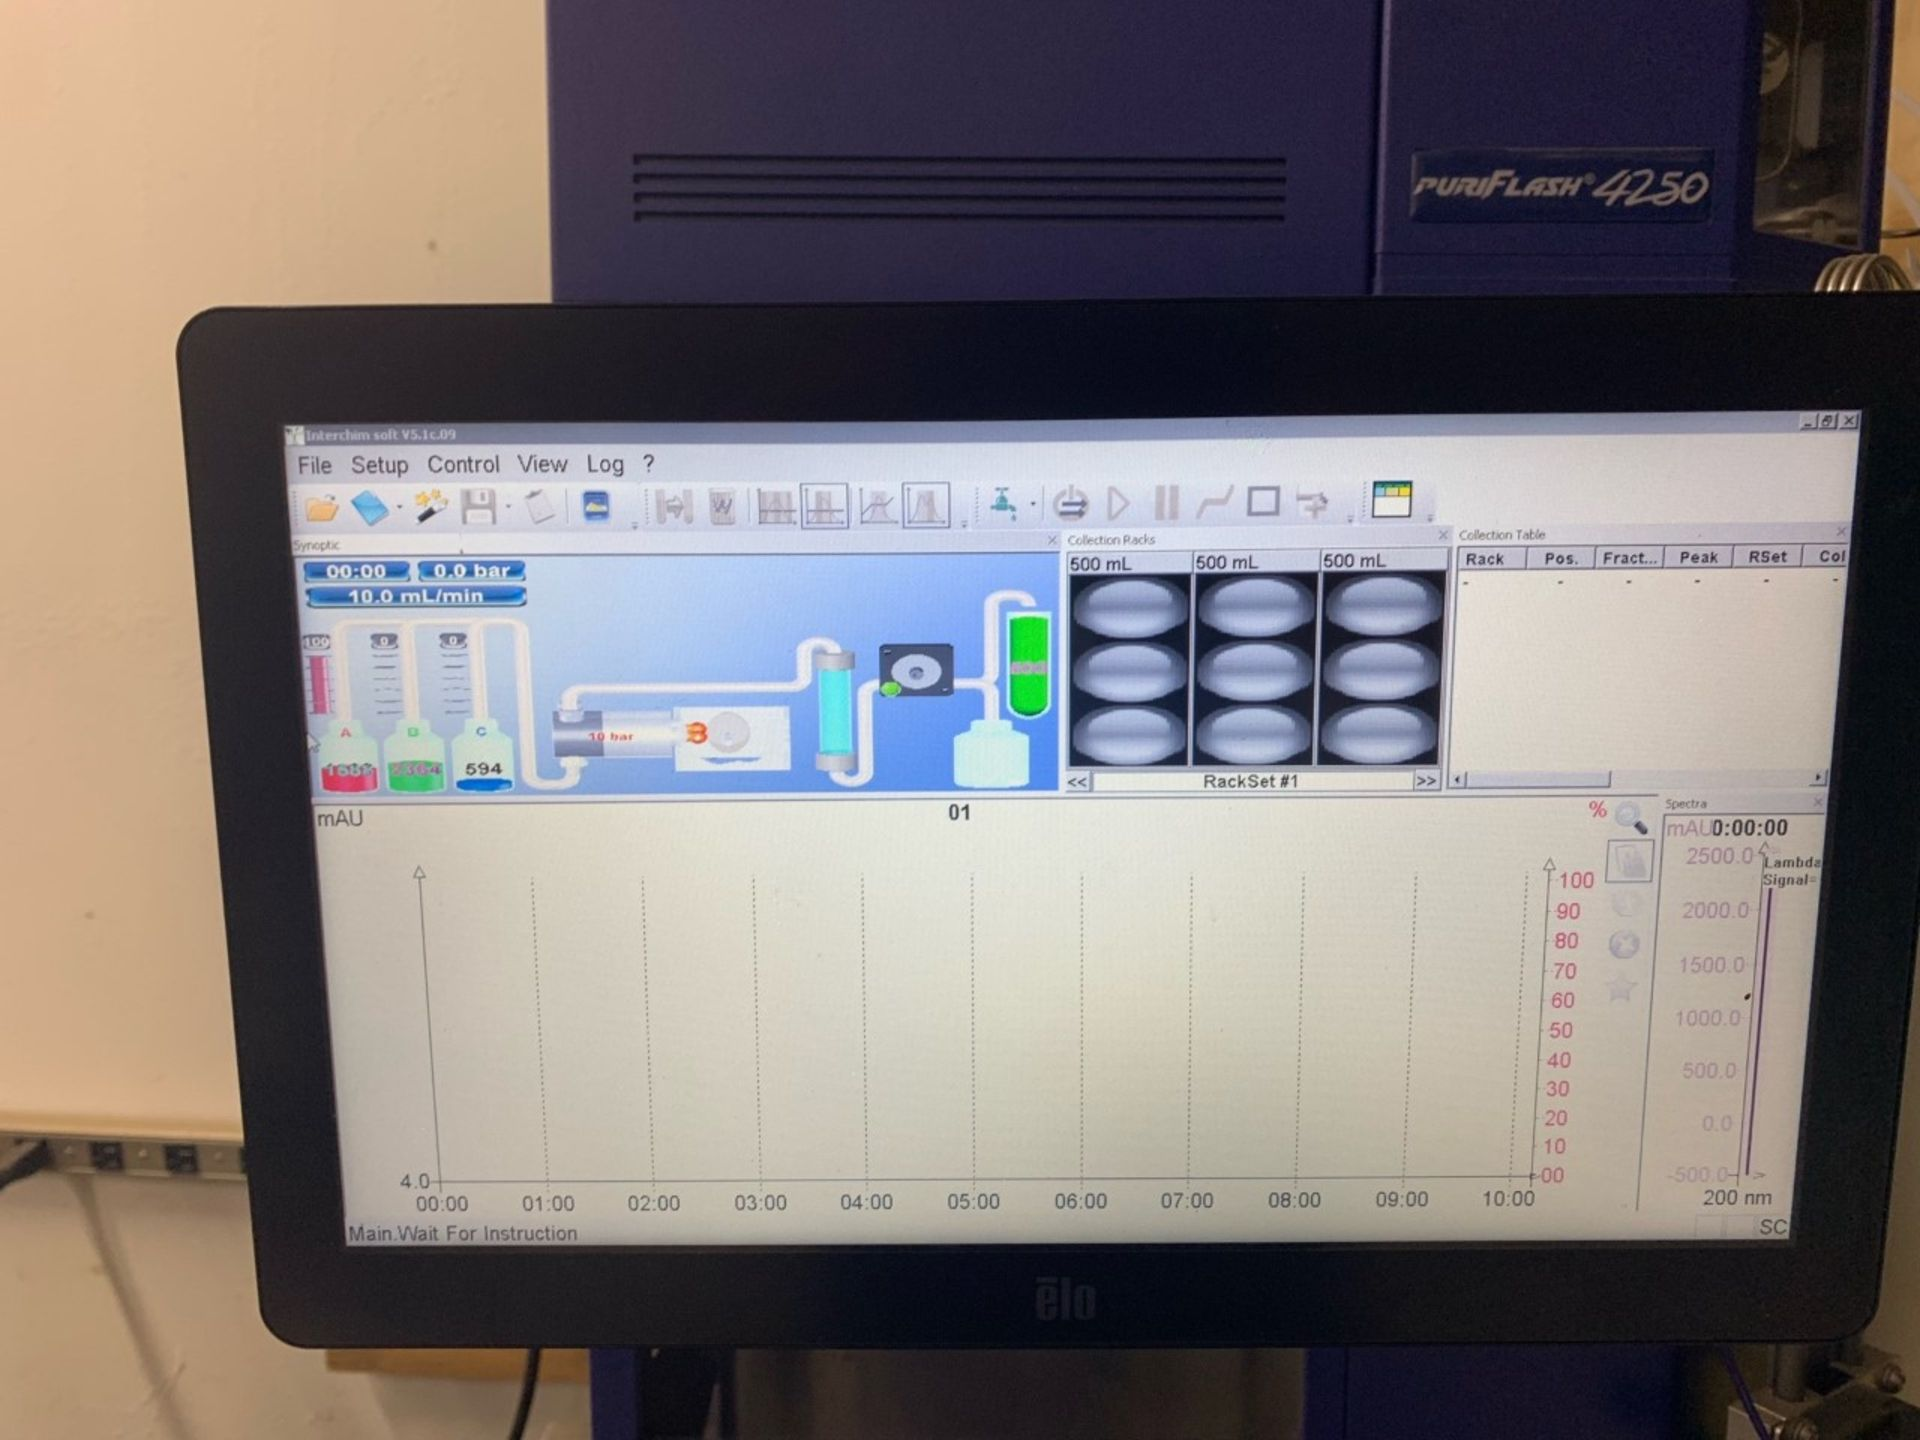 Used- Interchim Purification Prep HPLC, Model PuriFlash 4250. Flash and Prep HPLC in one instrument - Image 4 of 8